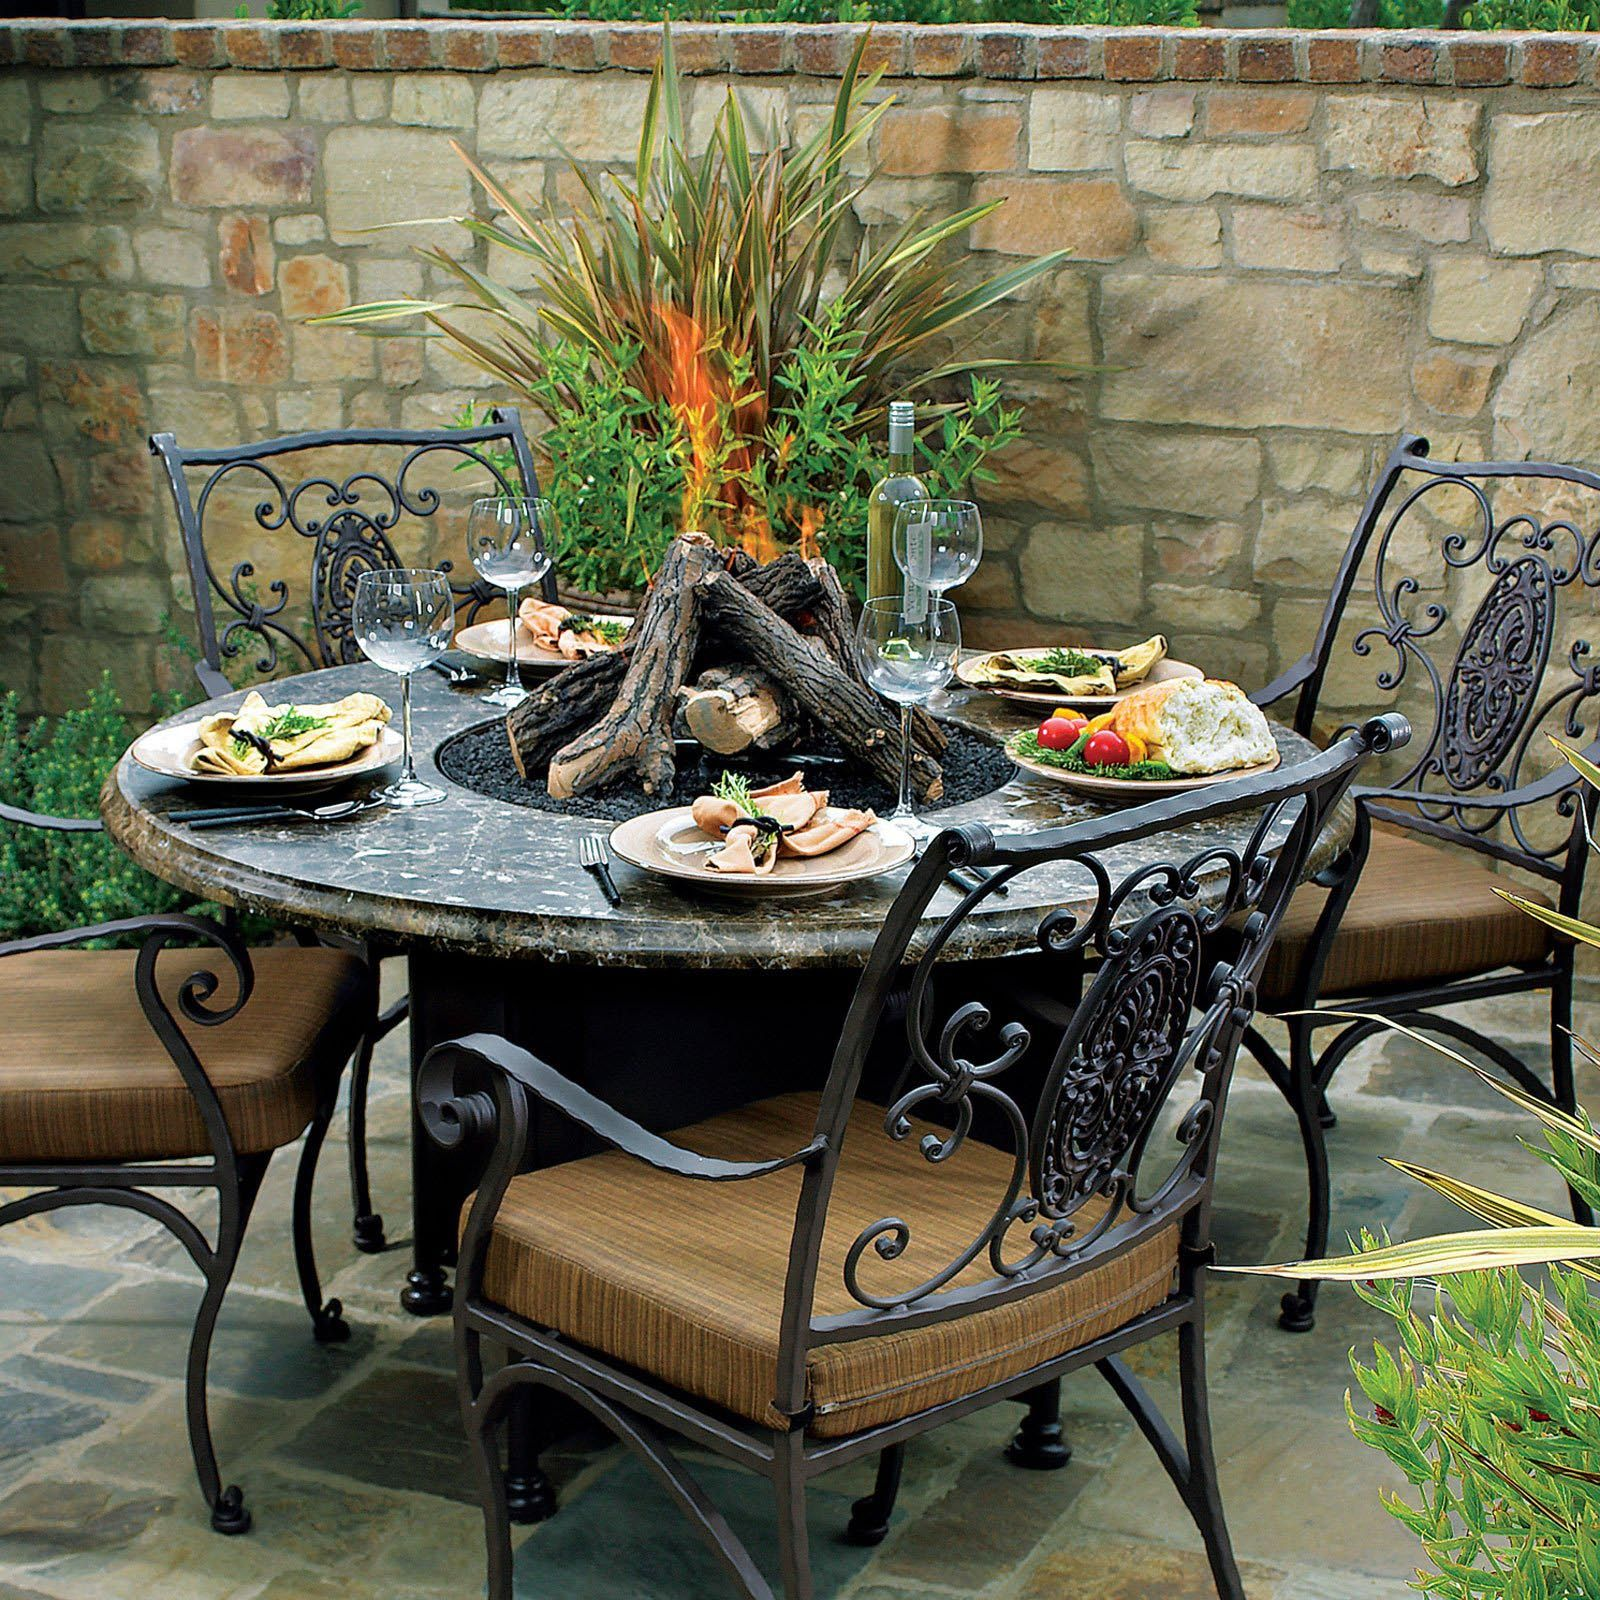 Etonnant Patio Table With Fire Pit In Middle